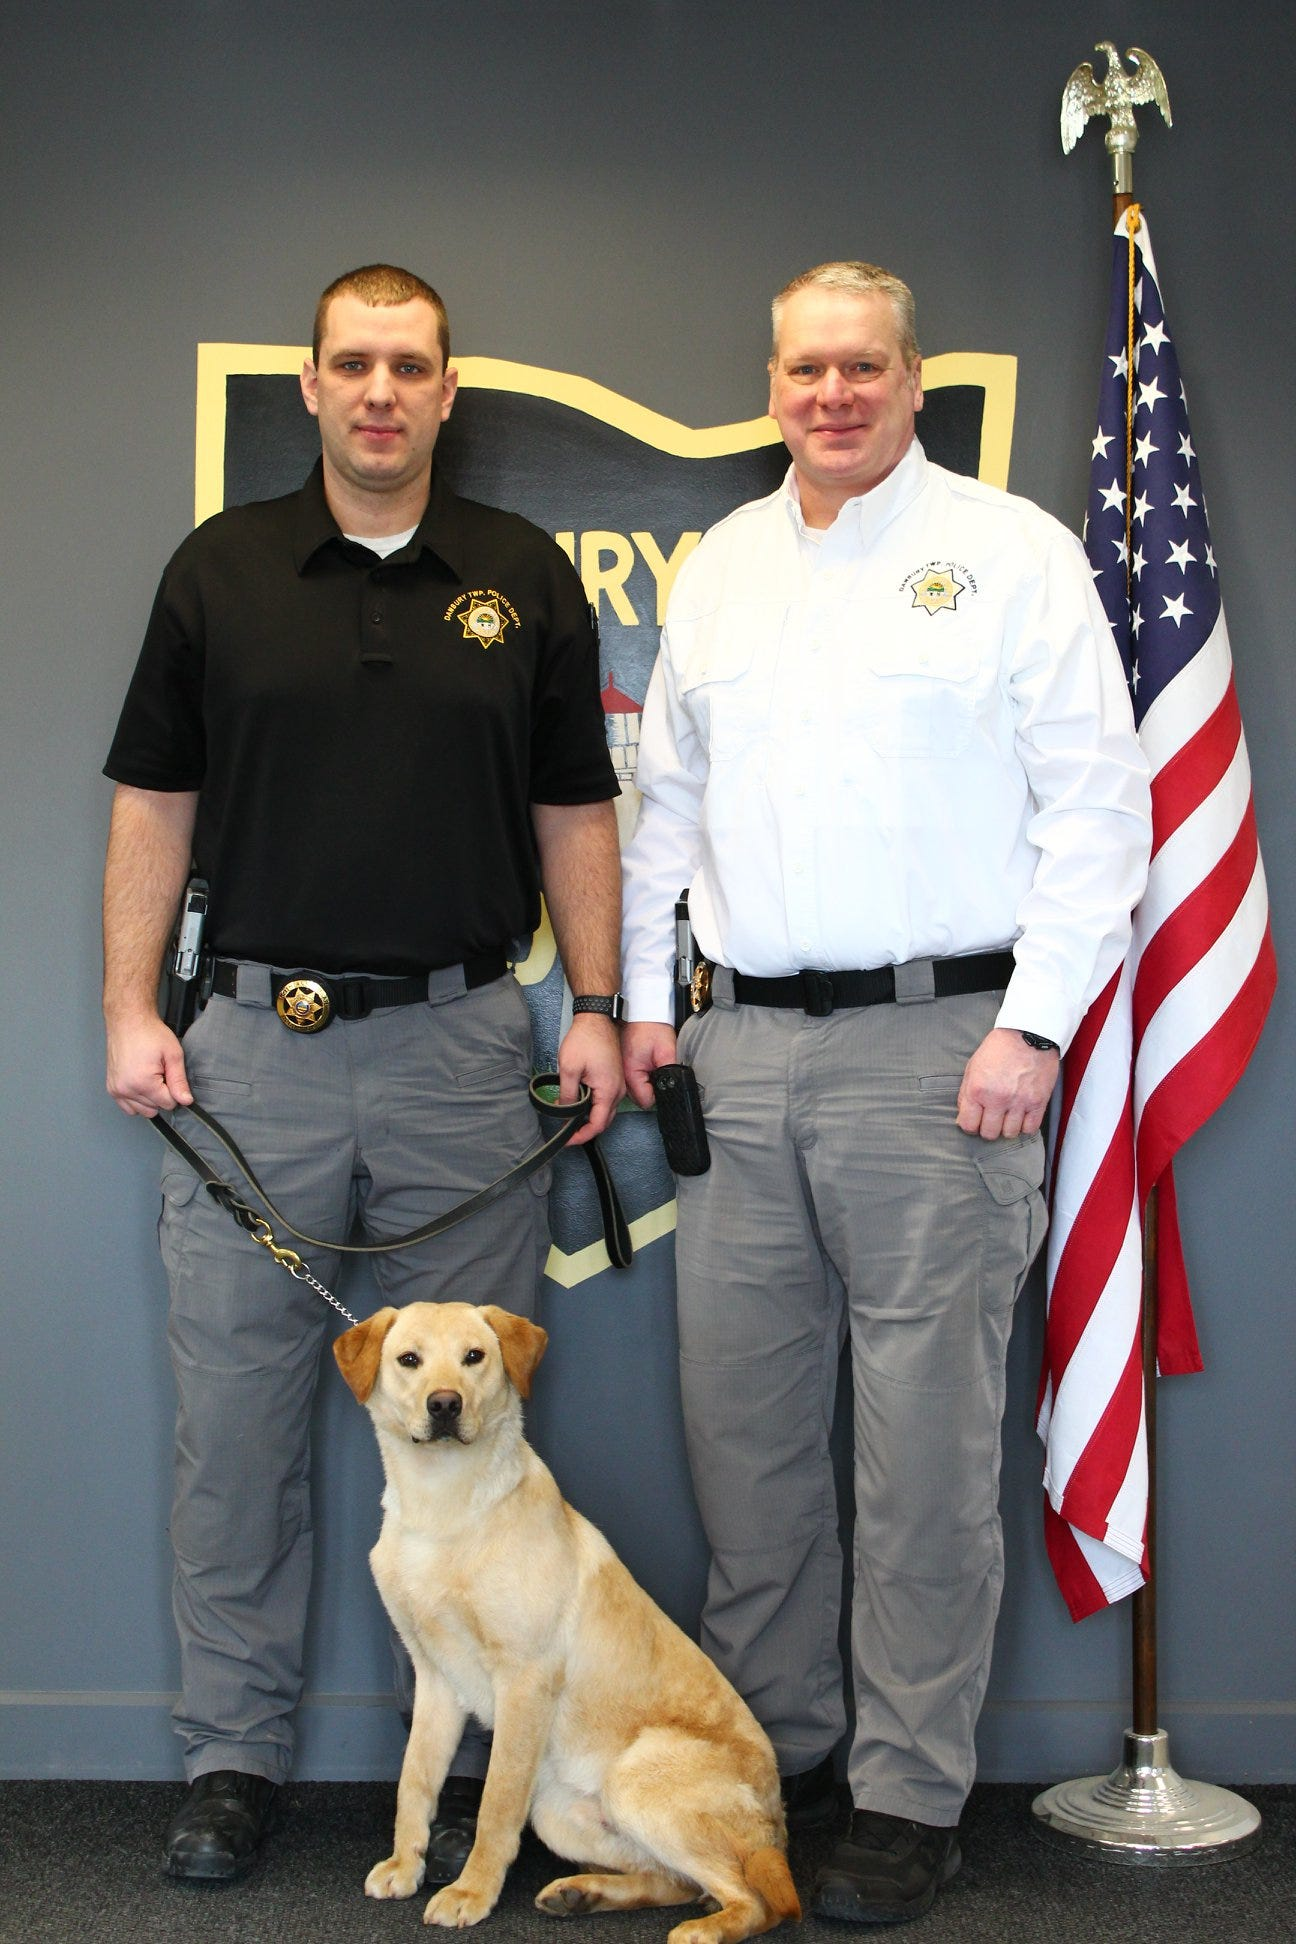 Chief Michael Meisler, right, of the Danbury Township Police Department, said Officer Brian Sloan's K-9 partner, Kalahan, will be trained in tracking nonviolent offenders in the future.